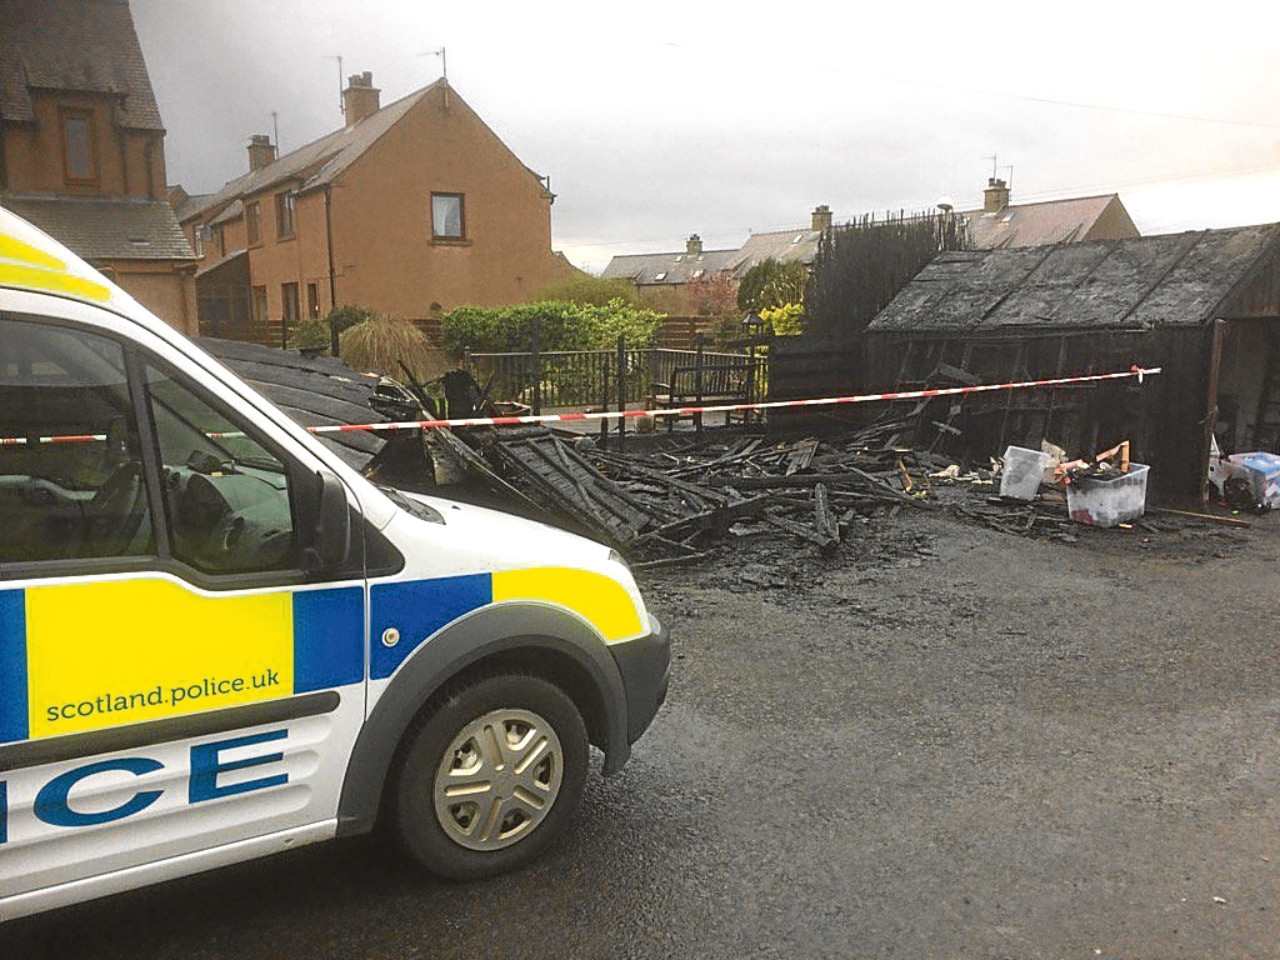 Police at the scene of the garage fire where several properties were left damaged.